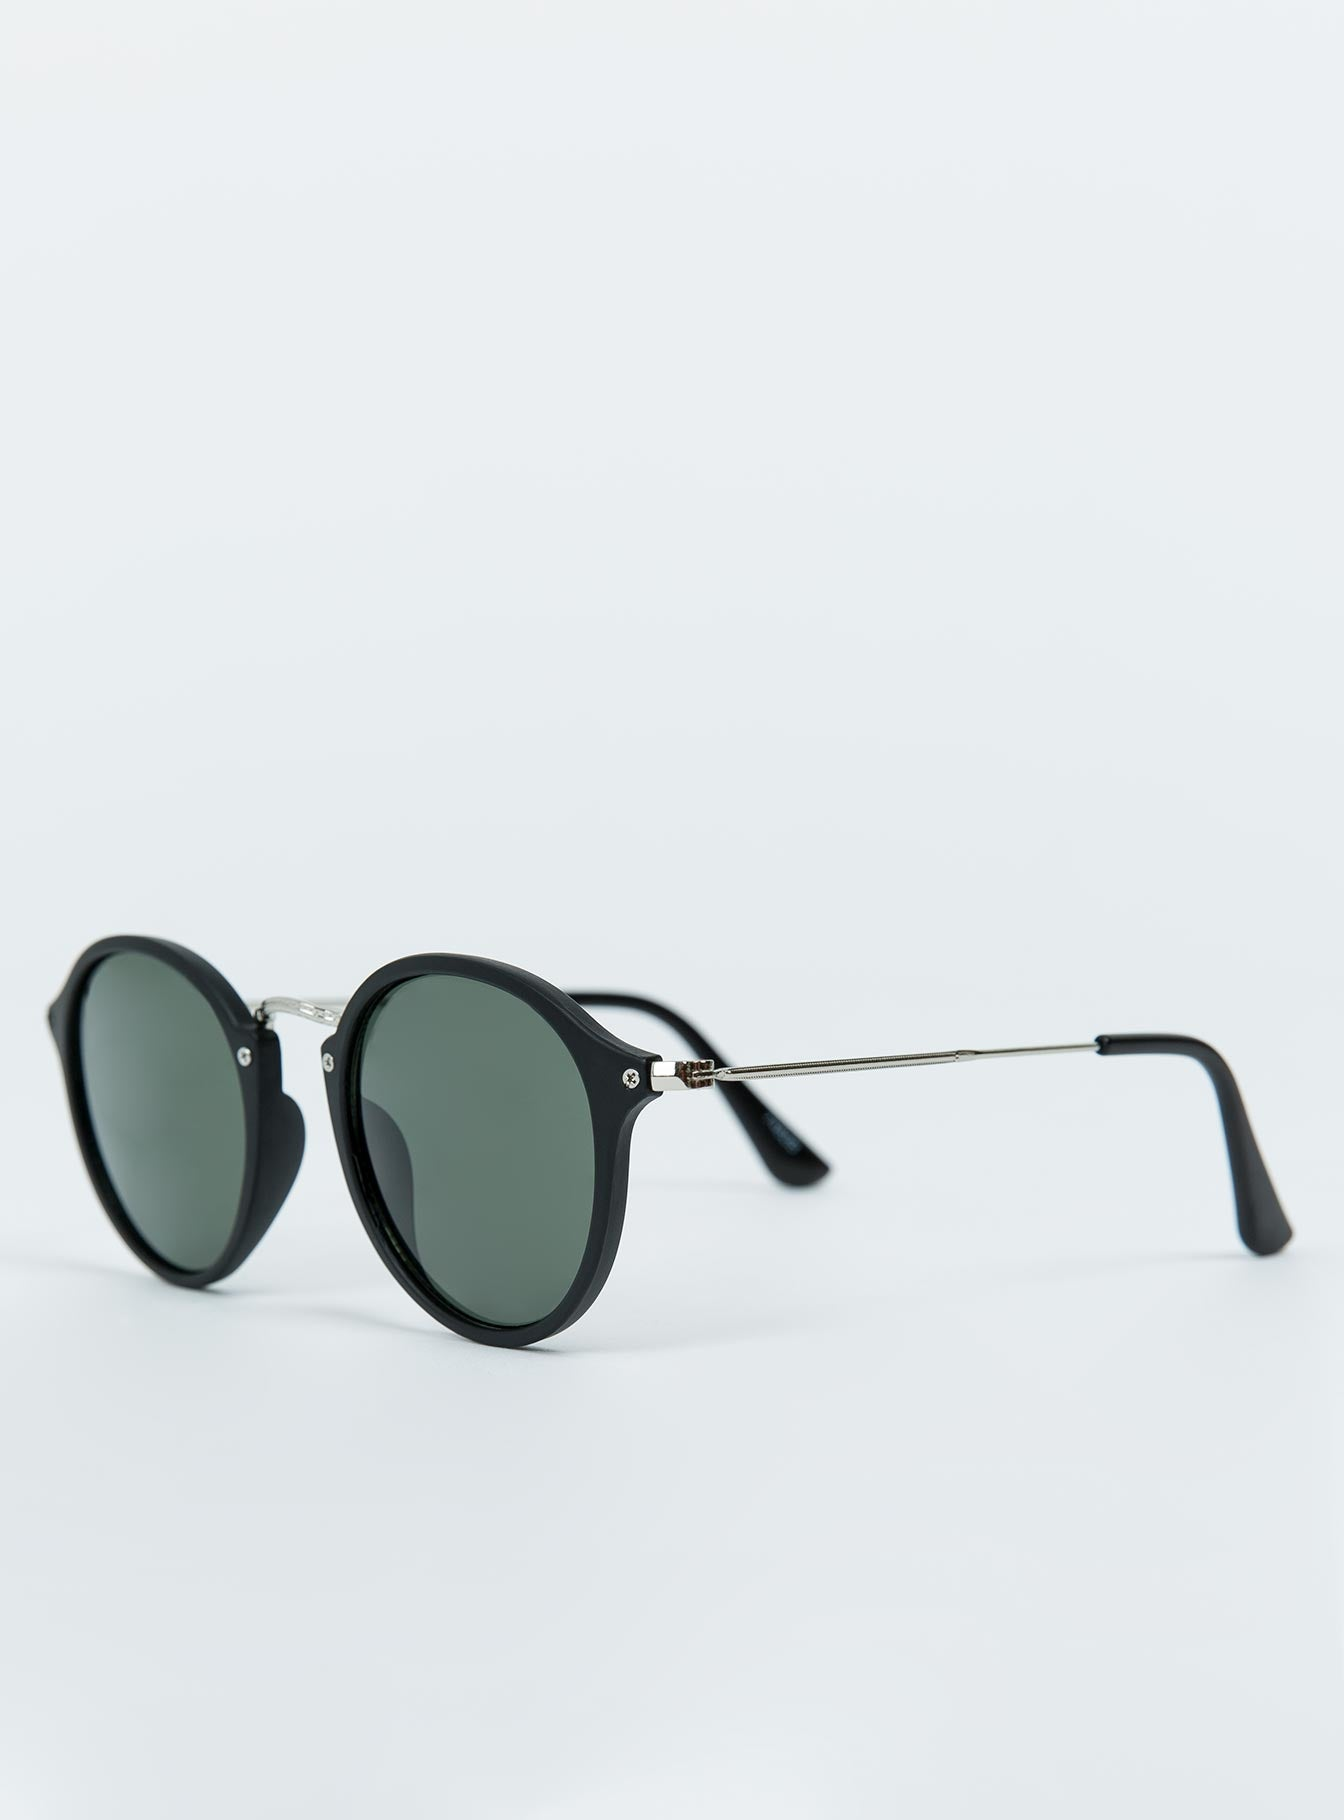 The Clueso Sunglasses Matte Black